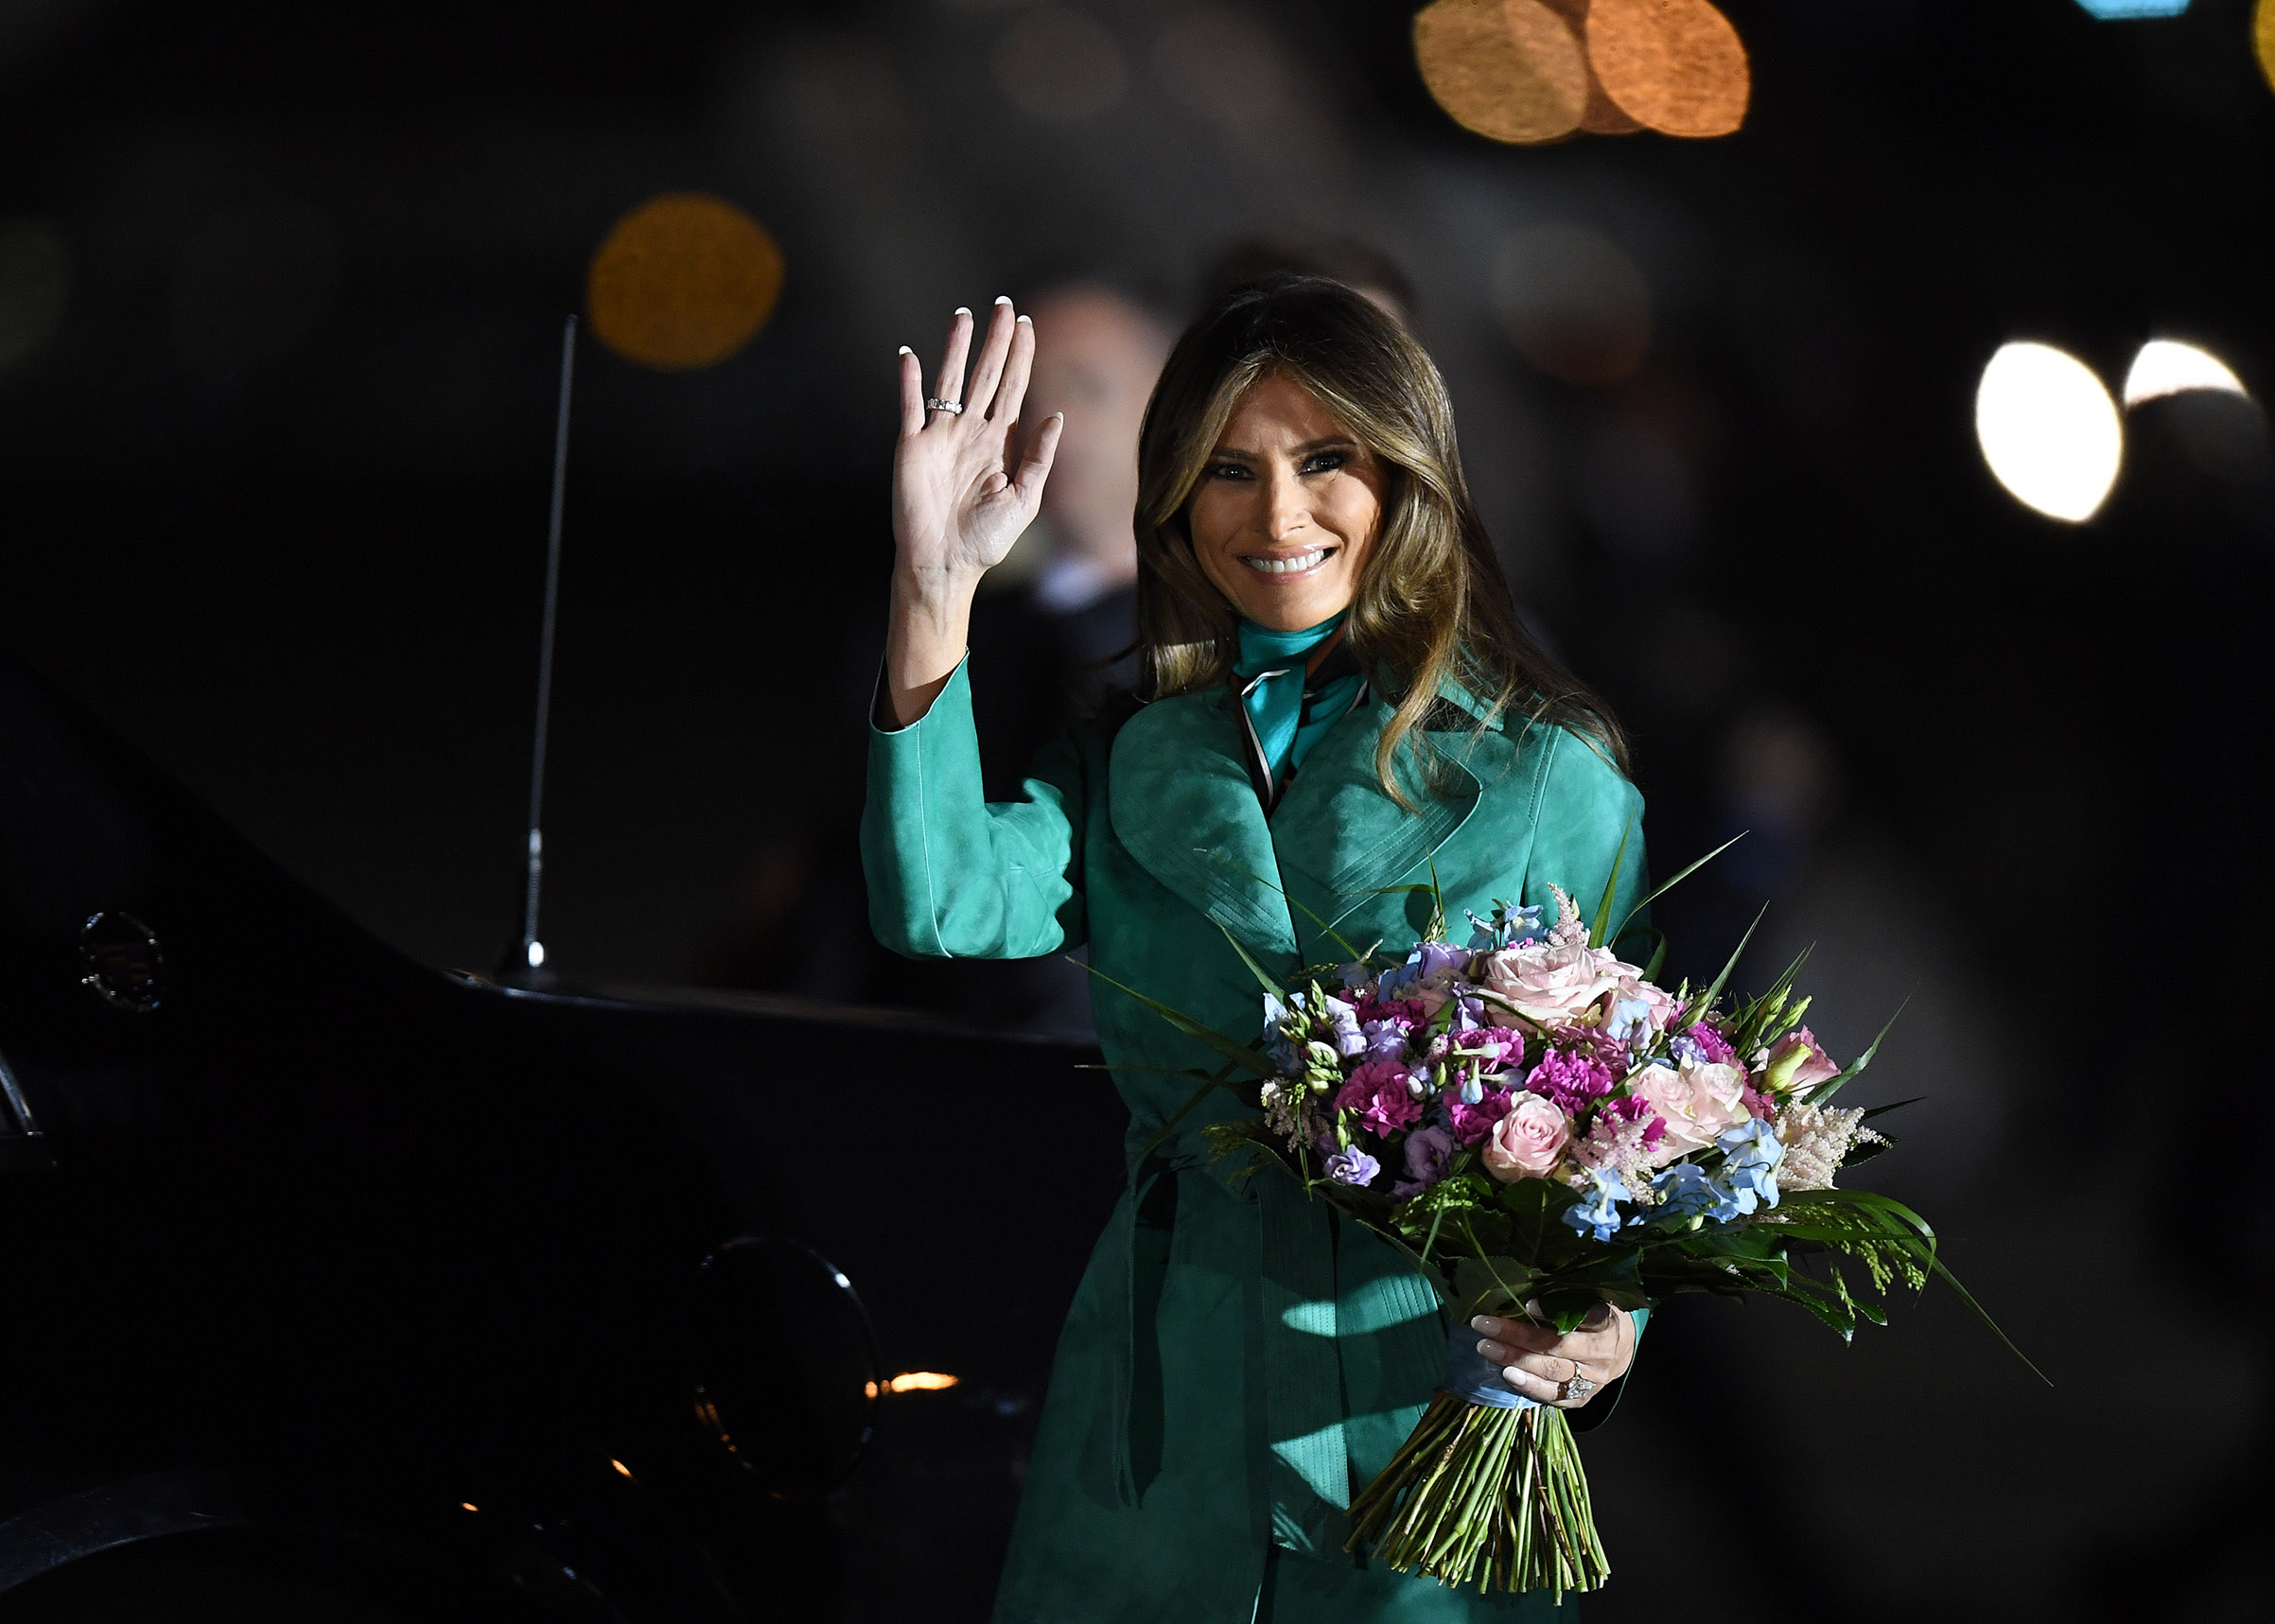 Arrival of President Trump and first lady Melania Trump, wearing green suede Diane von Furstenberg coat on July 05, 2017 in Warsaw, Poland.